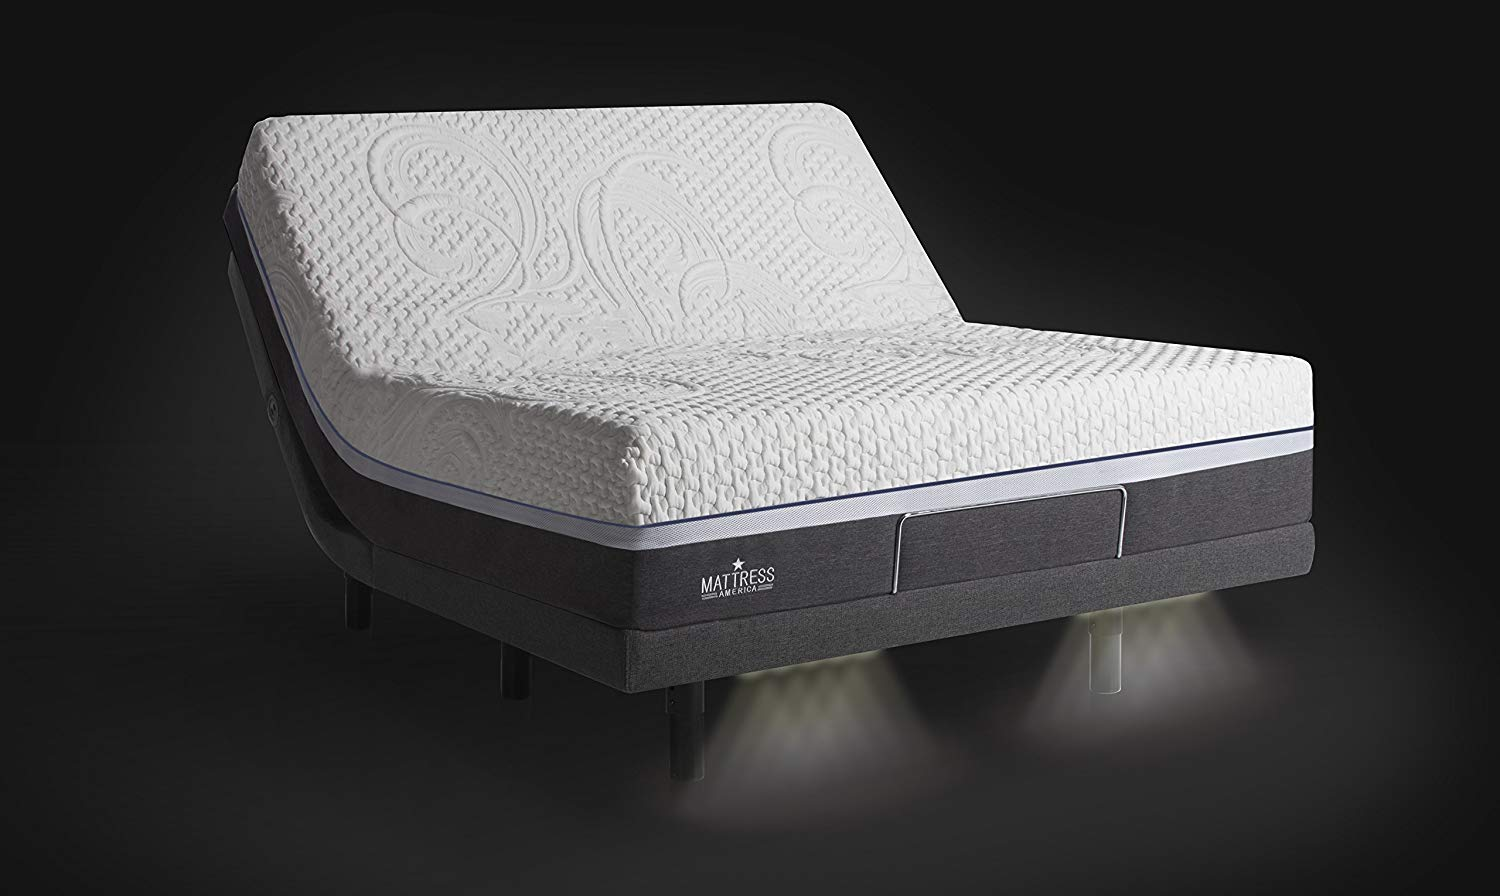 Mattress America Adjustable Bed Reviews - Under-the-bed lighting system